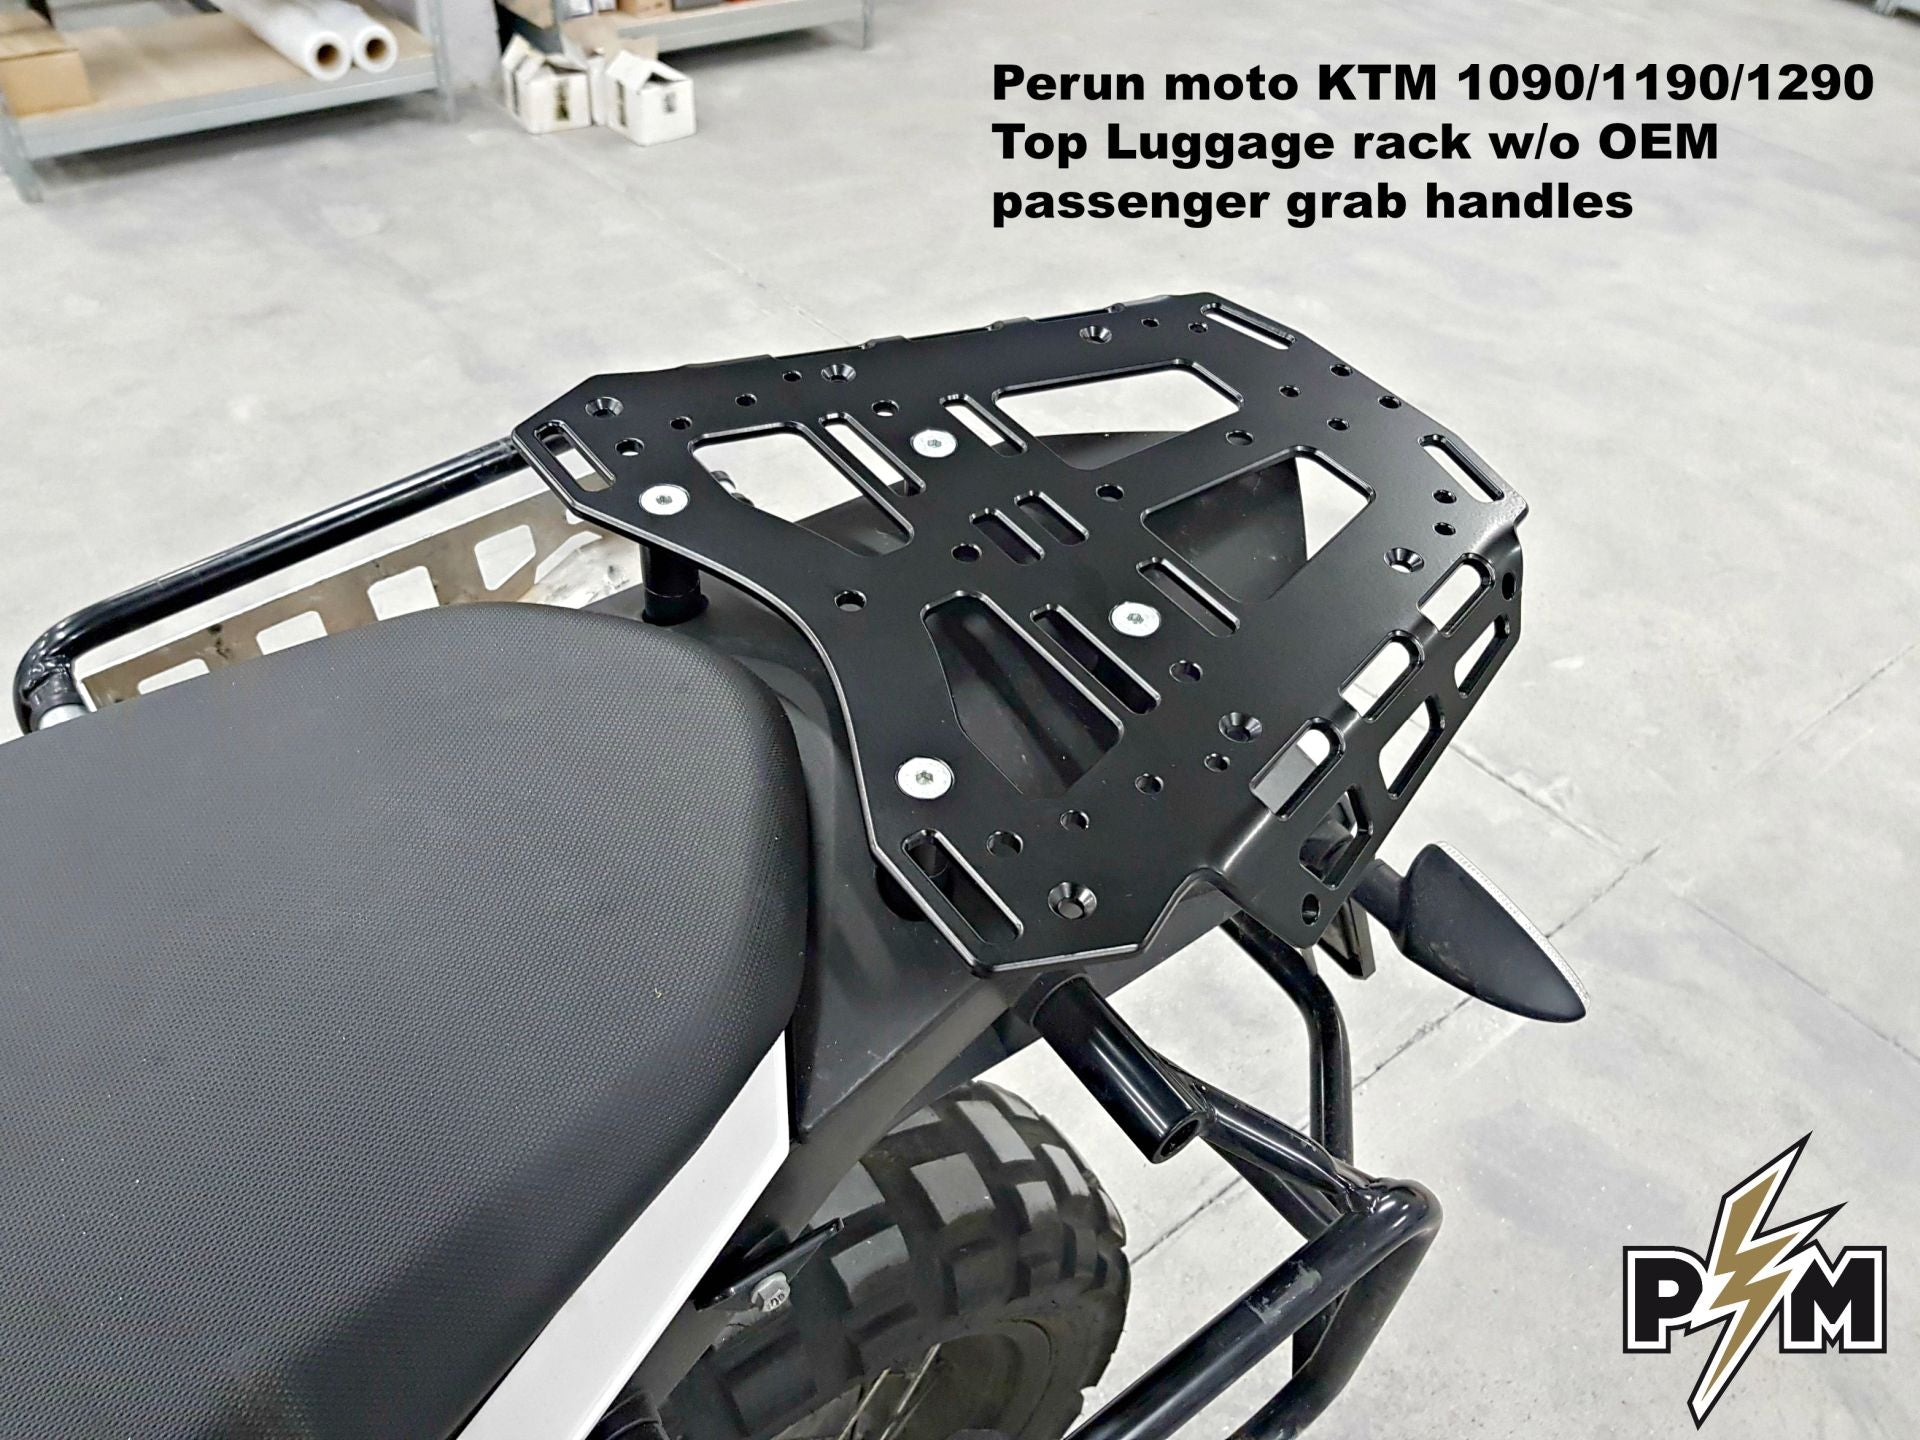 Perun moto KTM 1090/1190/1290 Top Luggage Rack - details